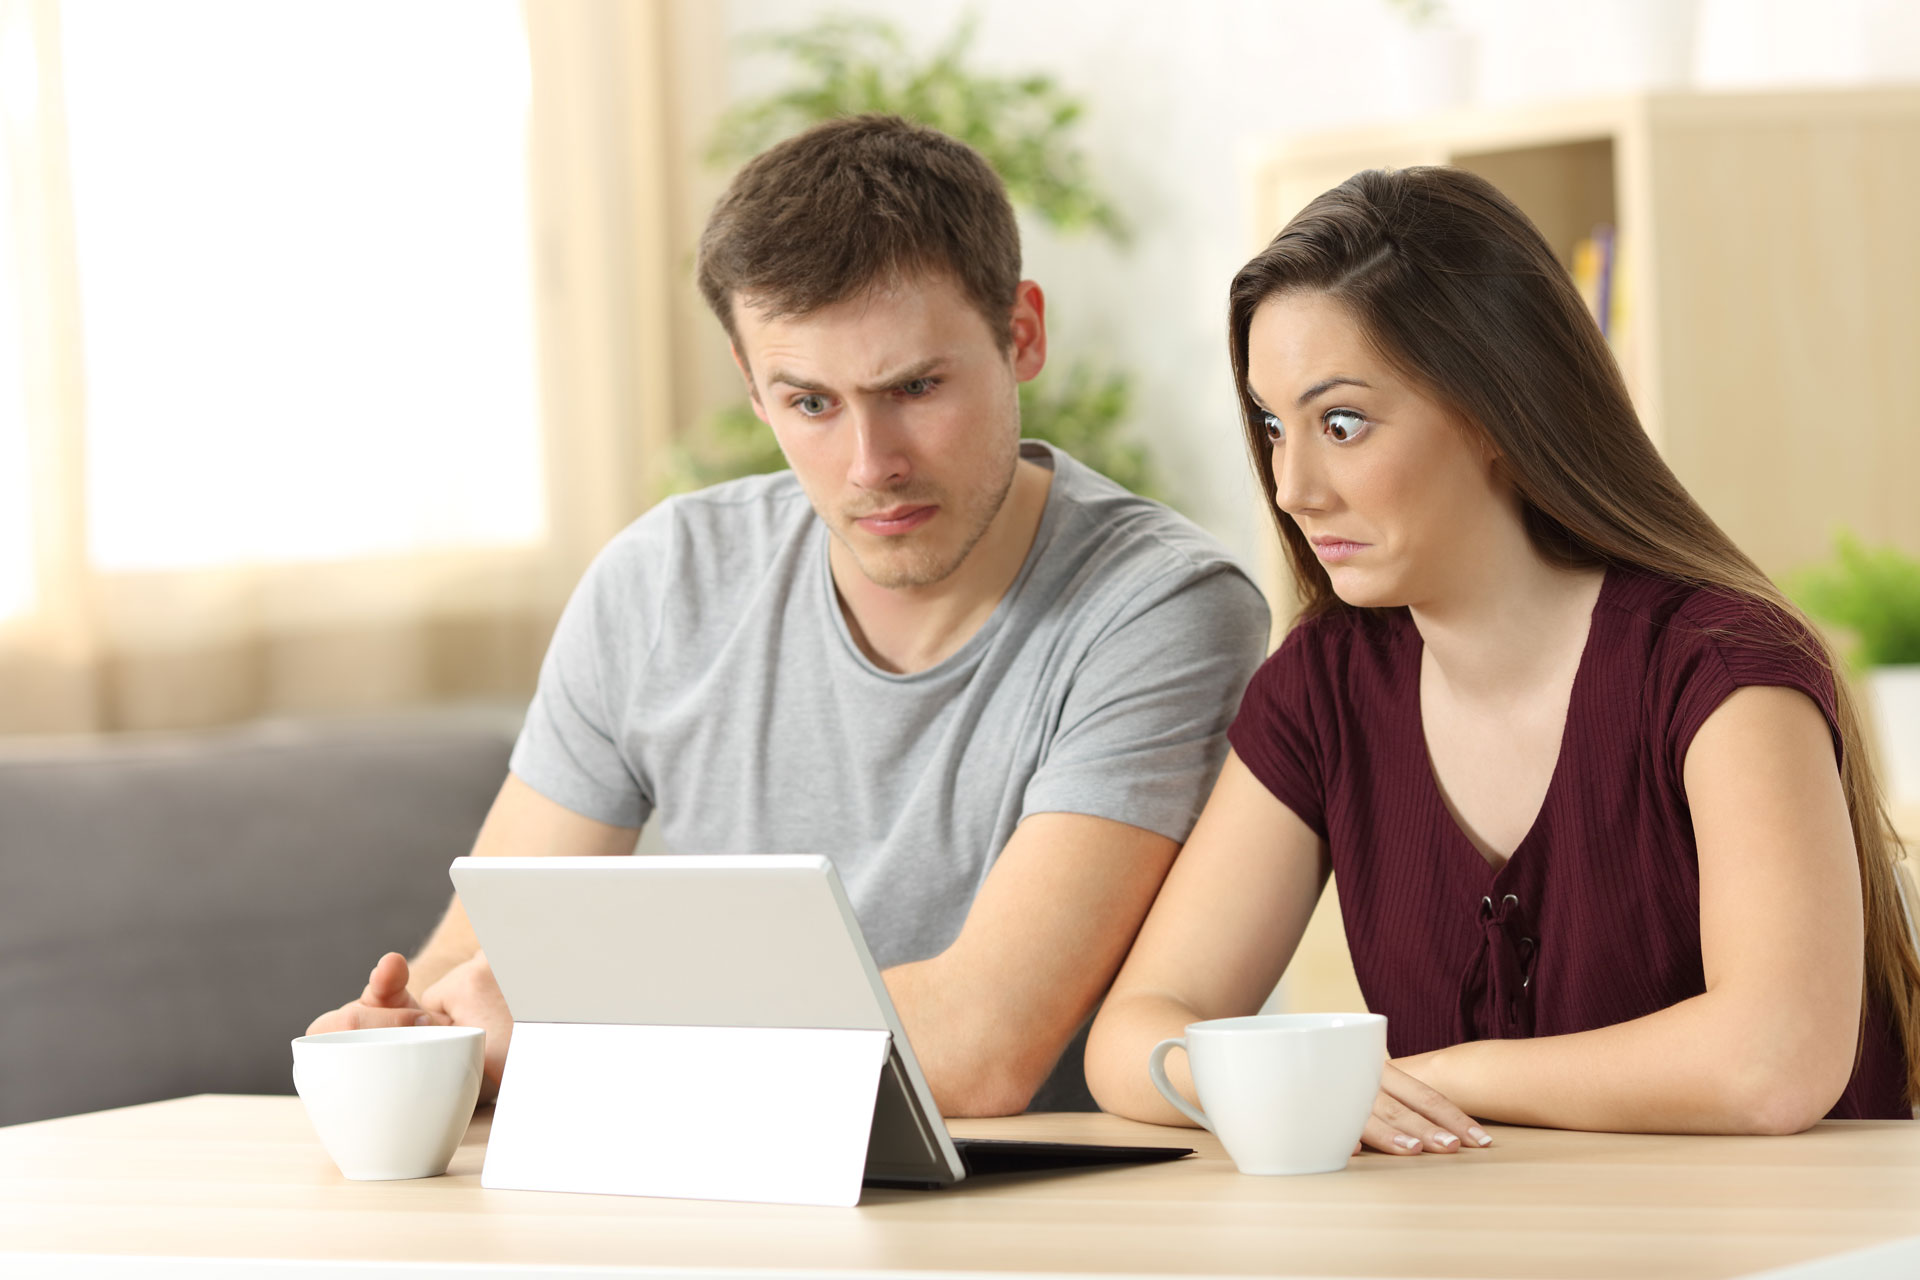 Confused couple looking at a tablet screen